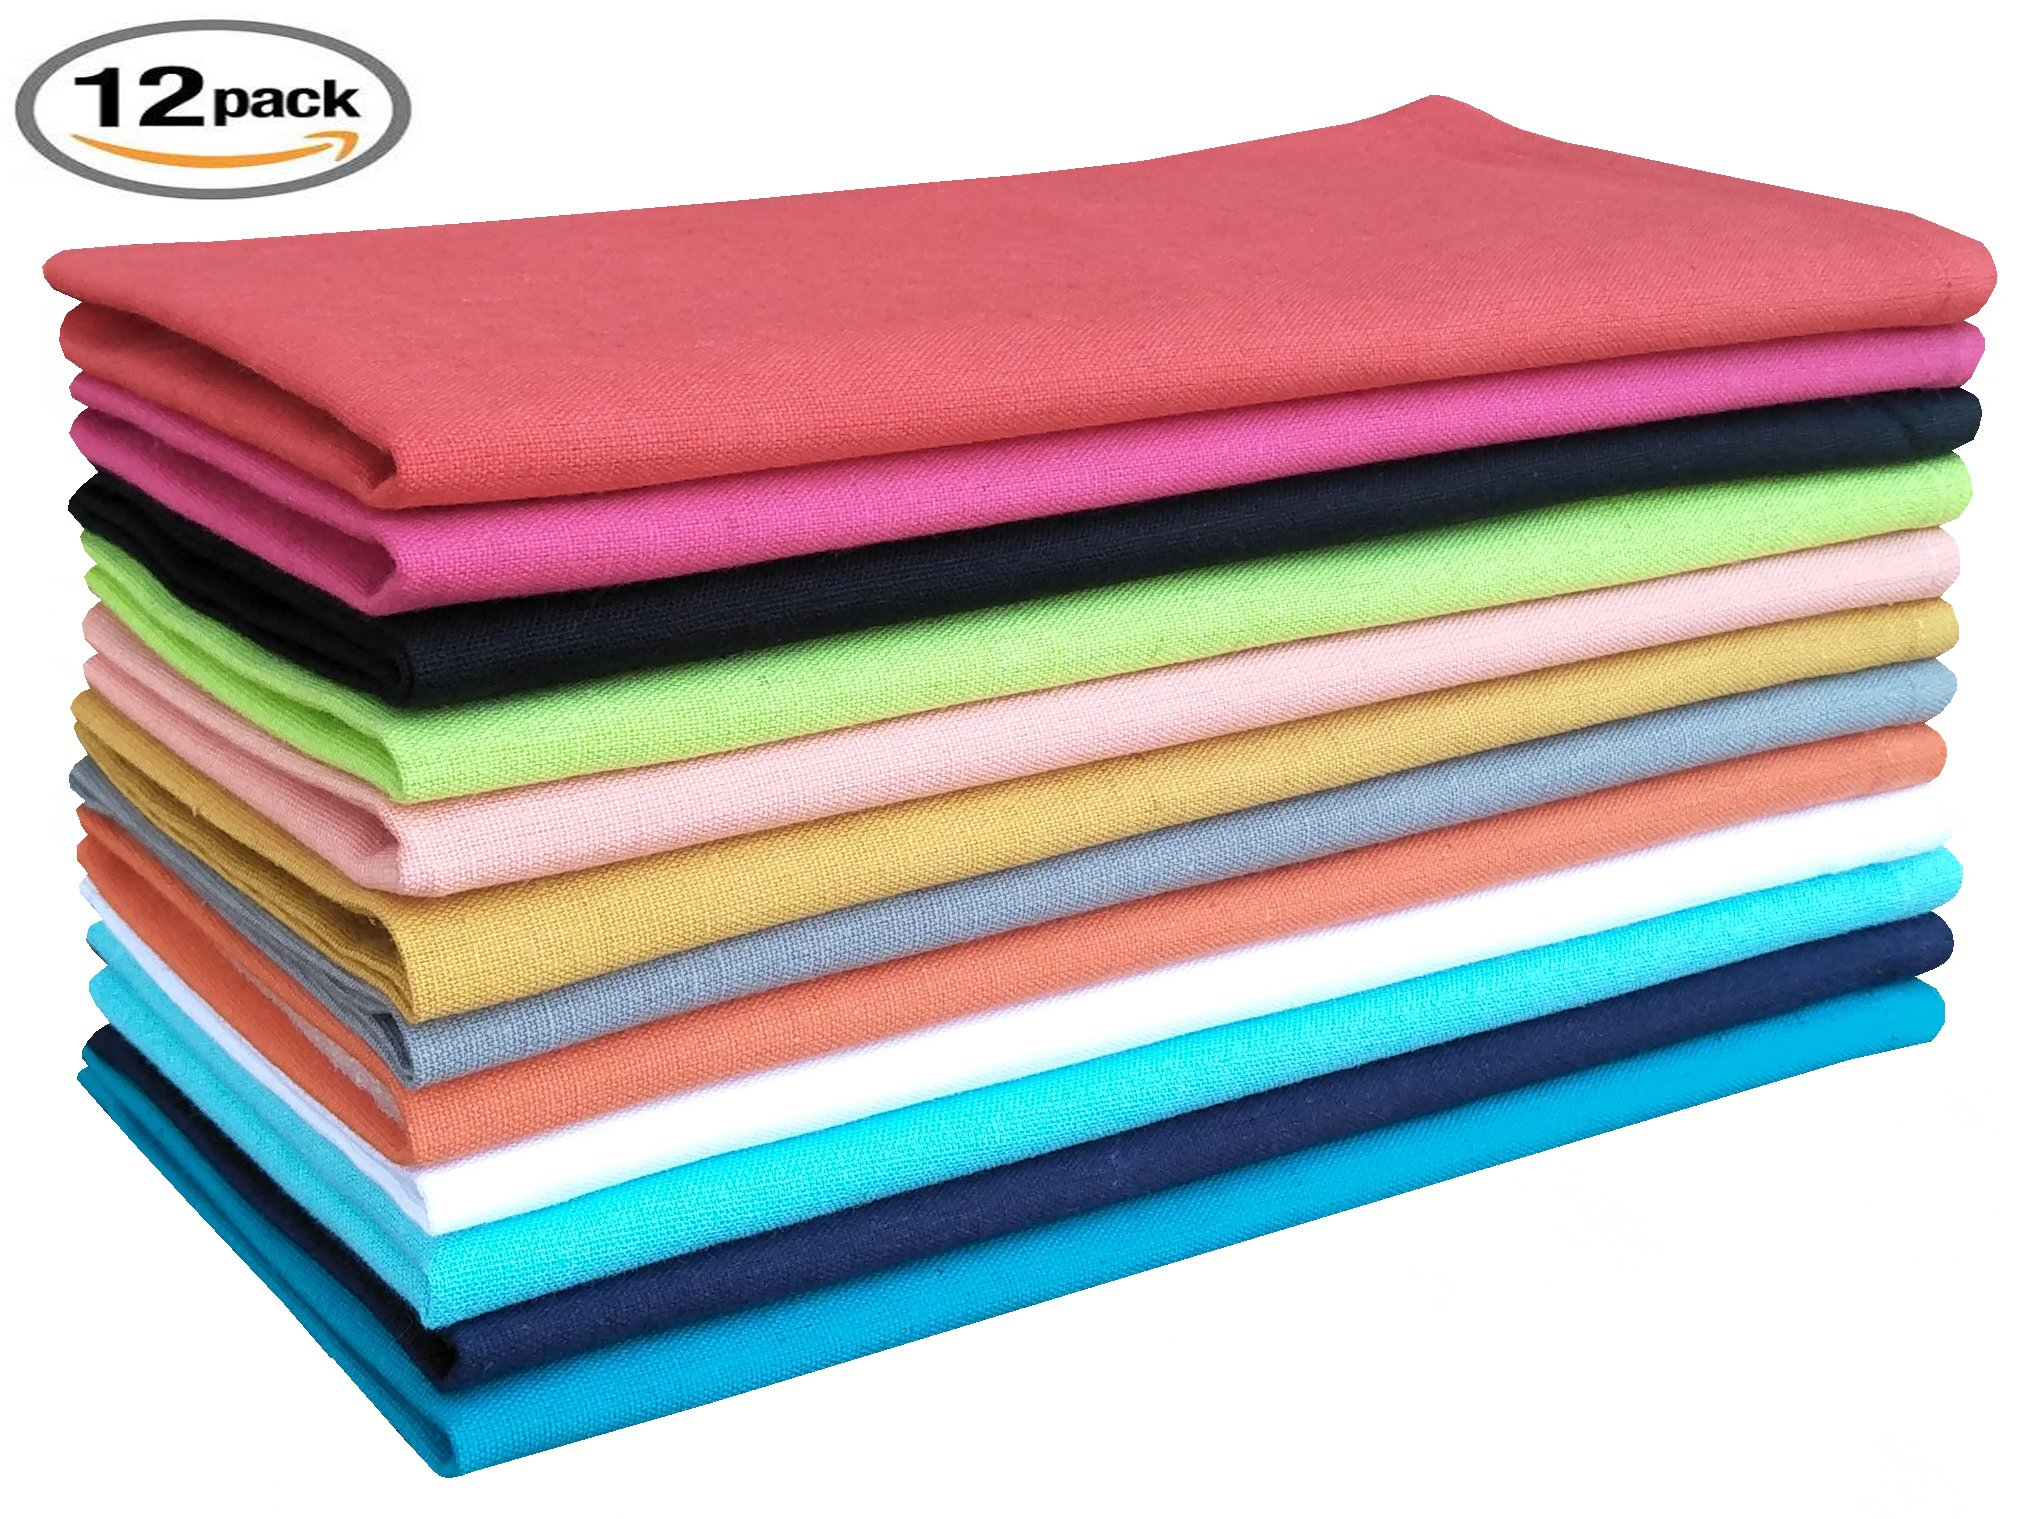 Flax cotton solid color oversized Dinner Napkins used in cocktail,birthday ,wedding party or any special dinner & every day use as well. Size 19x19 Multi color set of 12 Pieces , Tailored with Mitered